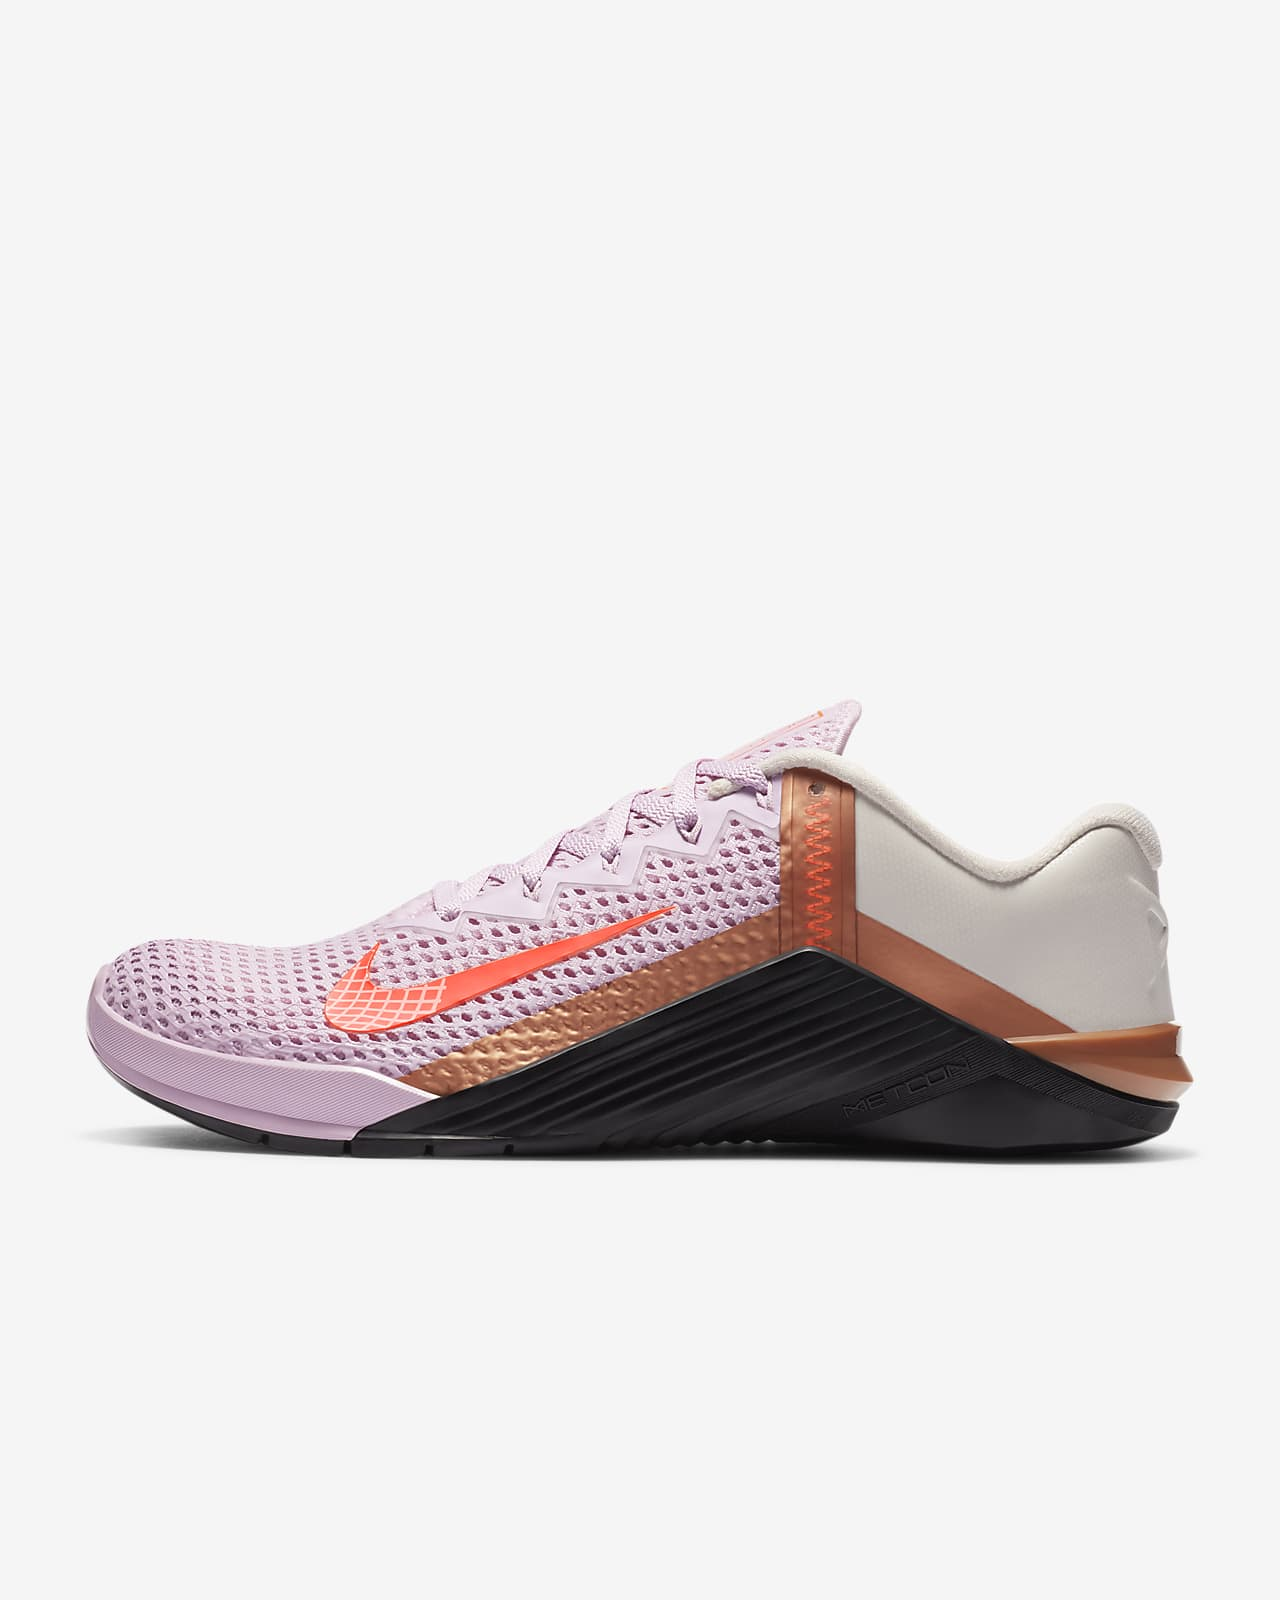 Nike Metcon 6 Damen-Trainingsschuh